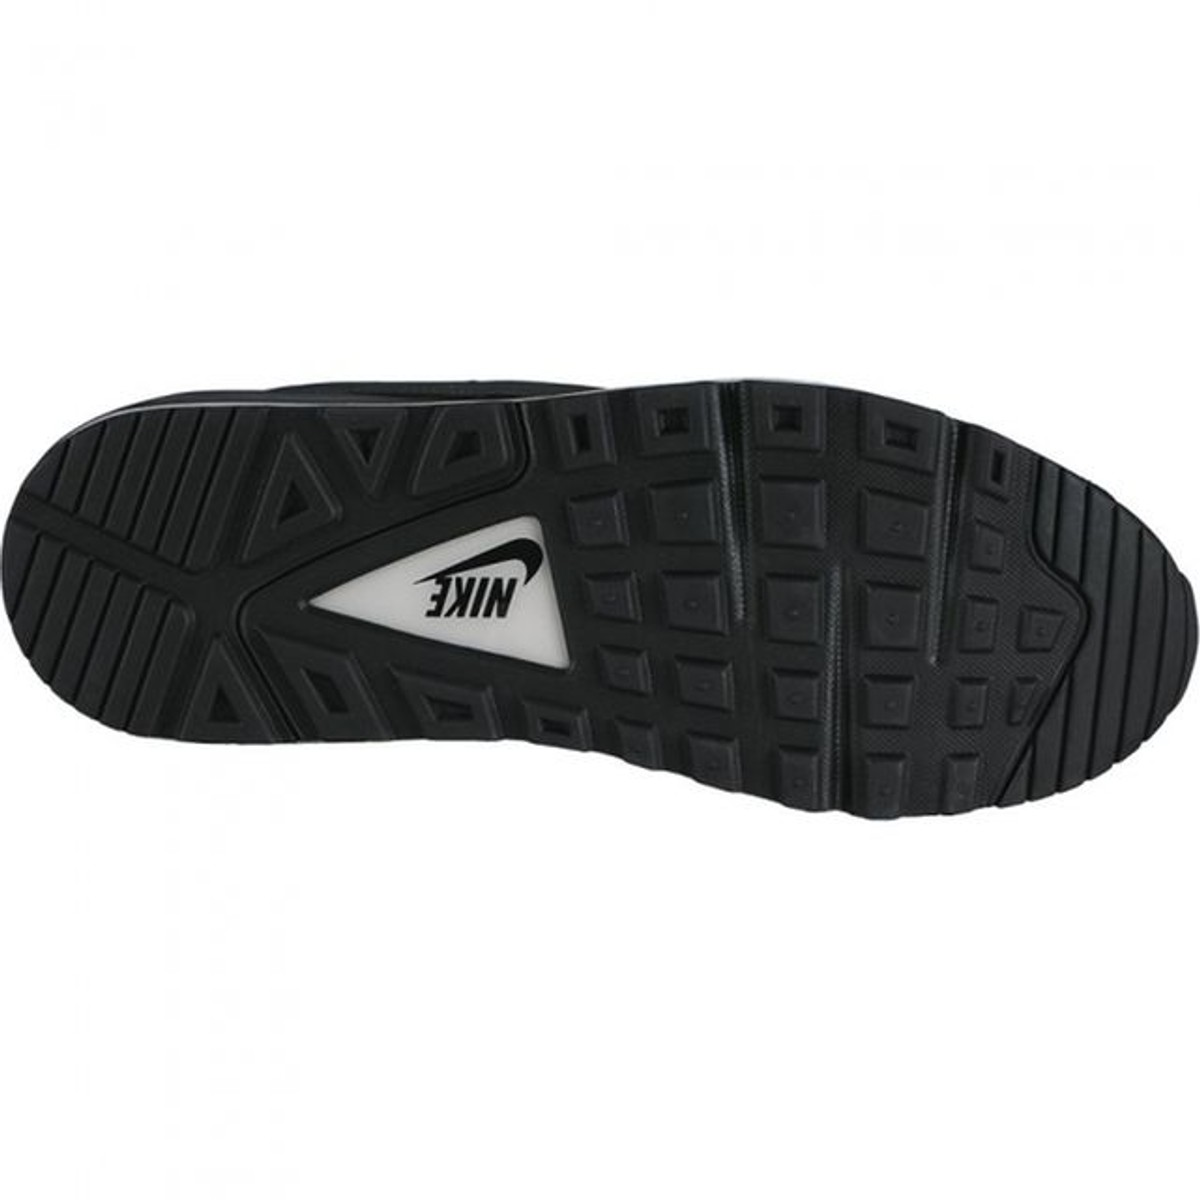 bas prix d44e6 9c421 Baskets Air Max Command Leather | Products | Nike air max ...